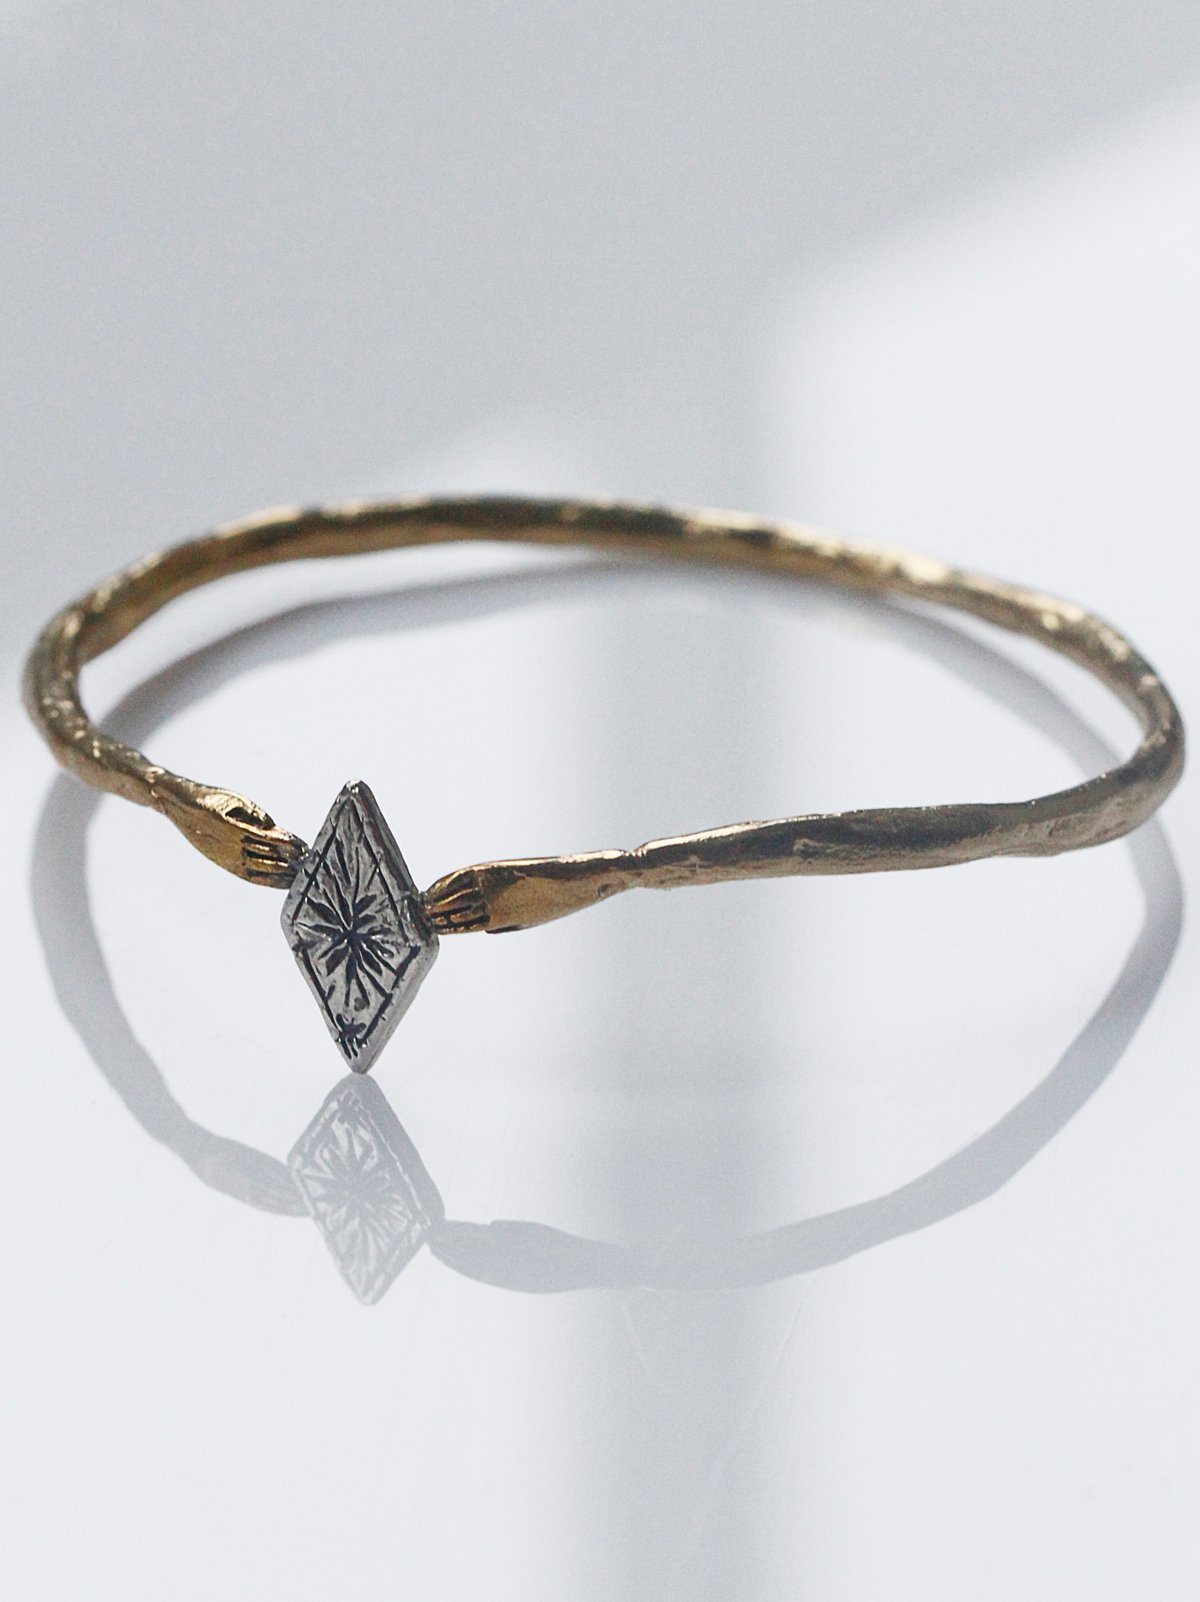 Starry Diamond Cuff